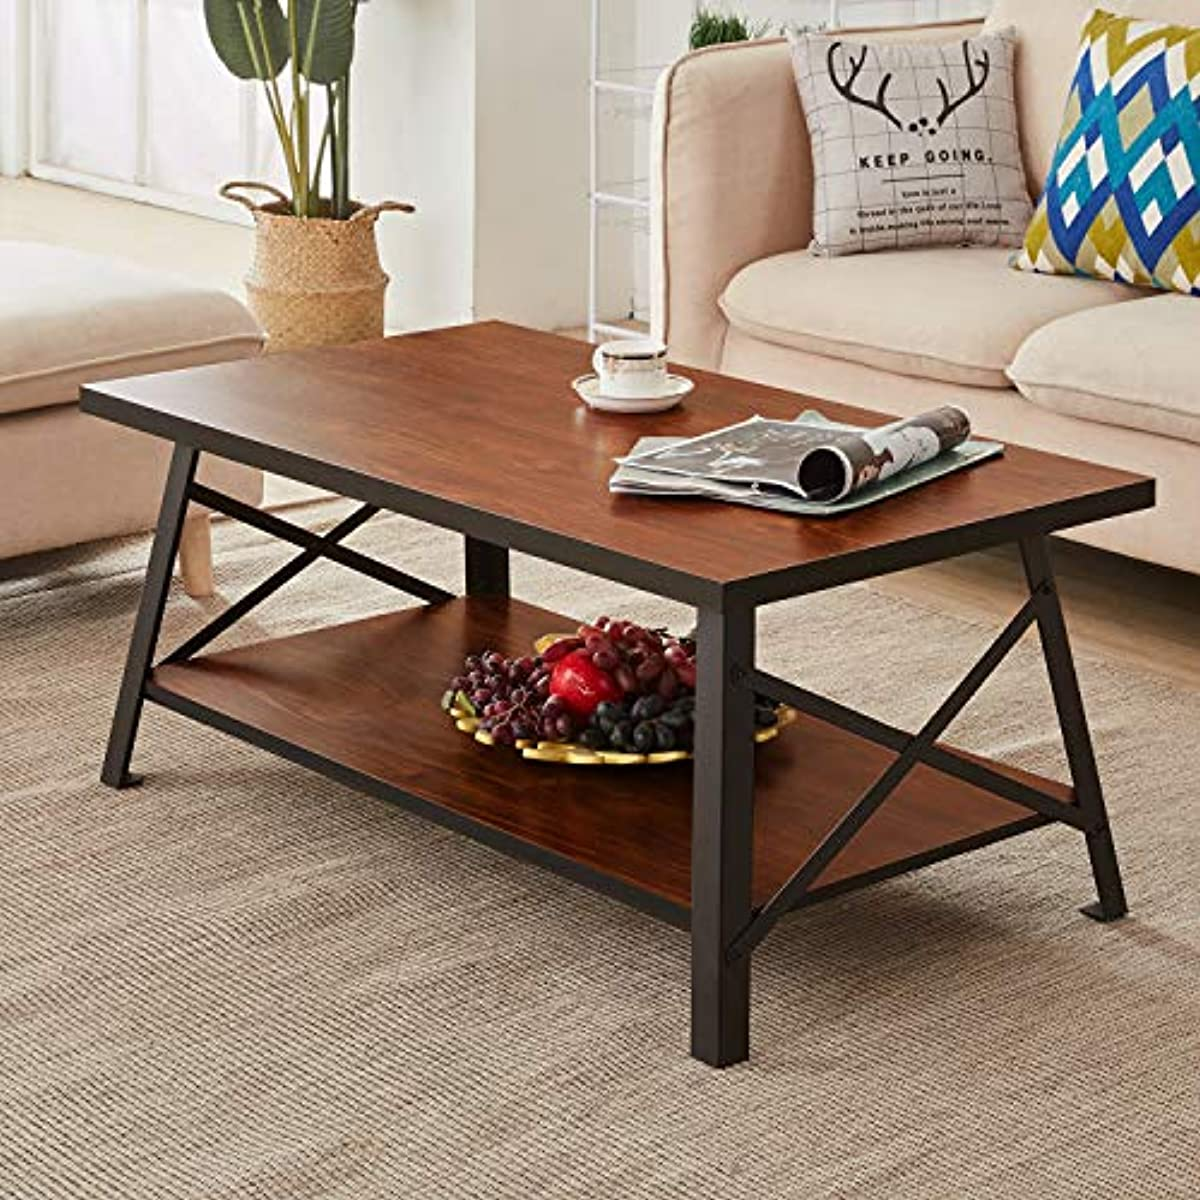 Vintage Rustic Coffee Table Sofa Side Storage Open Shelf Living Room ...